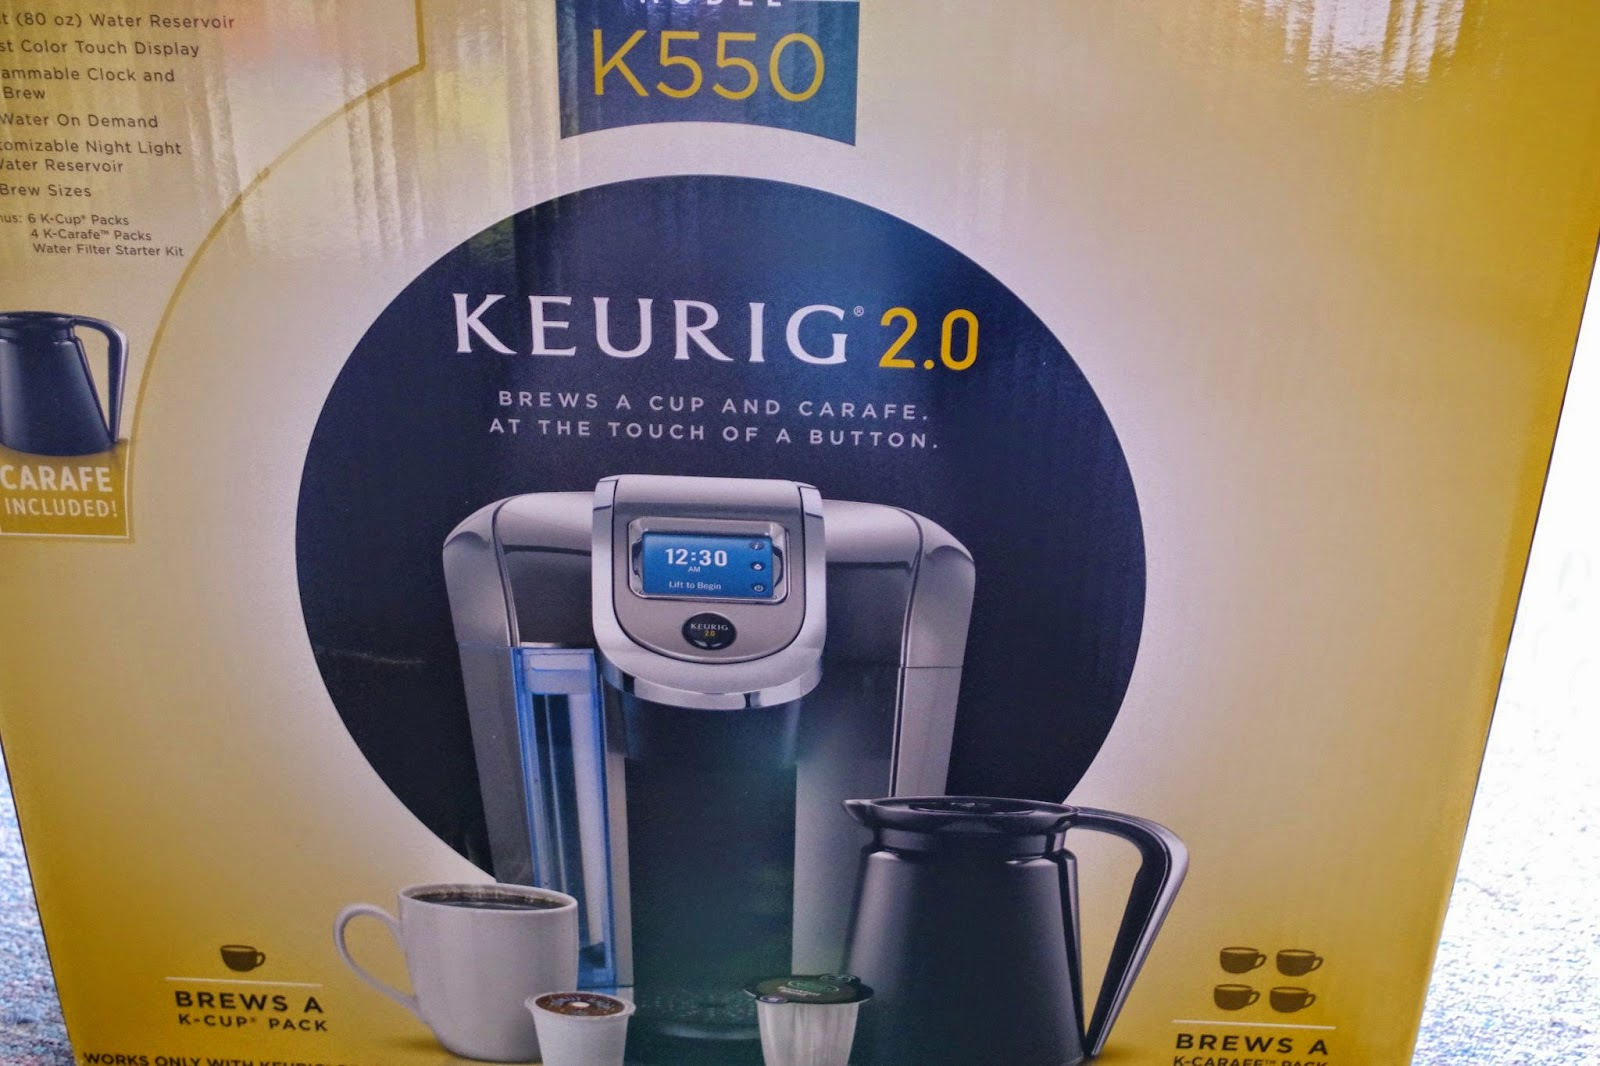 Keurig Coffee Maker Black Friday Deals 2014 : Gift Guide For Holidays 2014 Giveaway - Work Money Fun